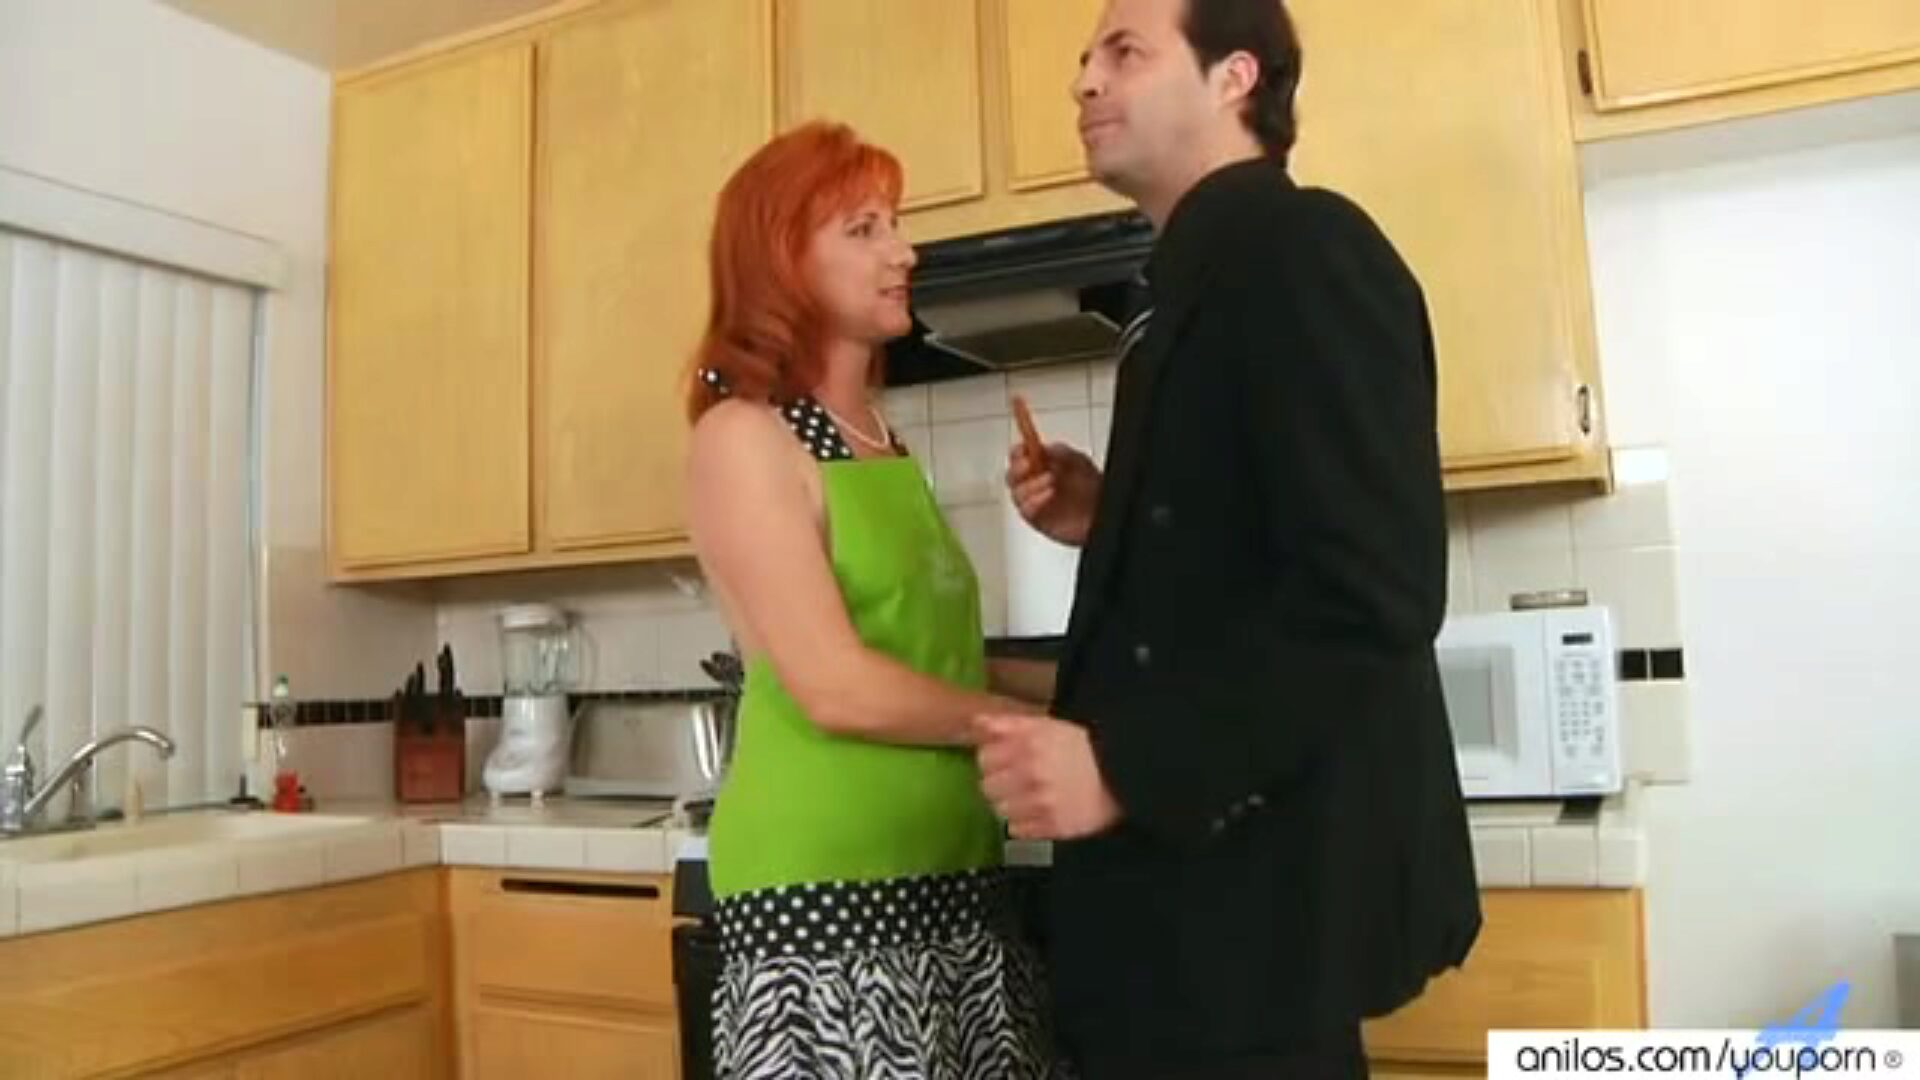 Redhead Sasha Brand Housewife Fucks In Kitchen Redhead Sasha Brand receives her unshaved Anilos wet crack pumped up in the kitchen table.